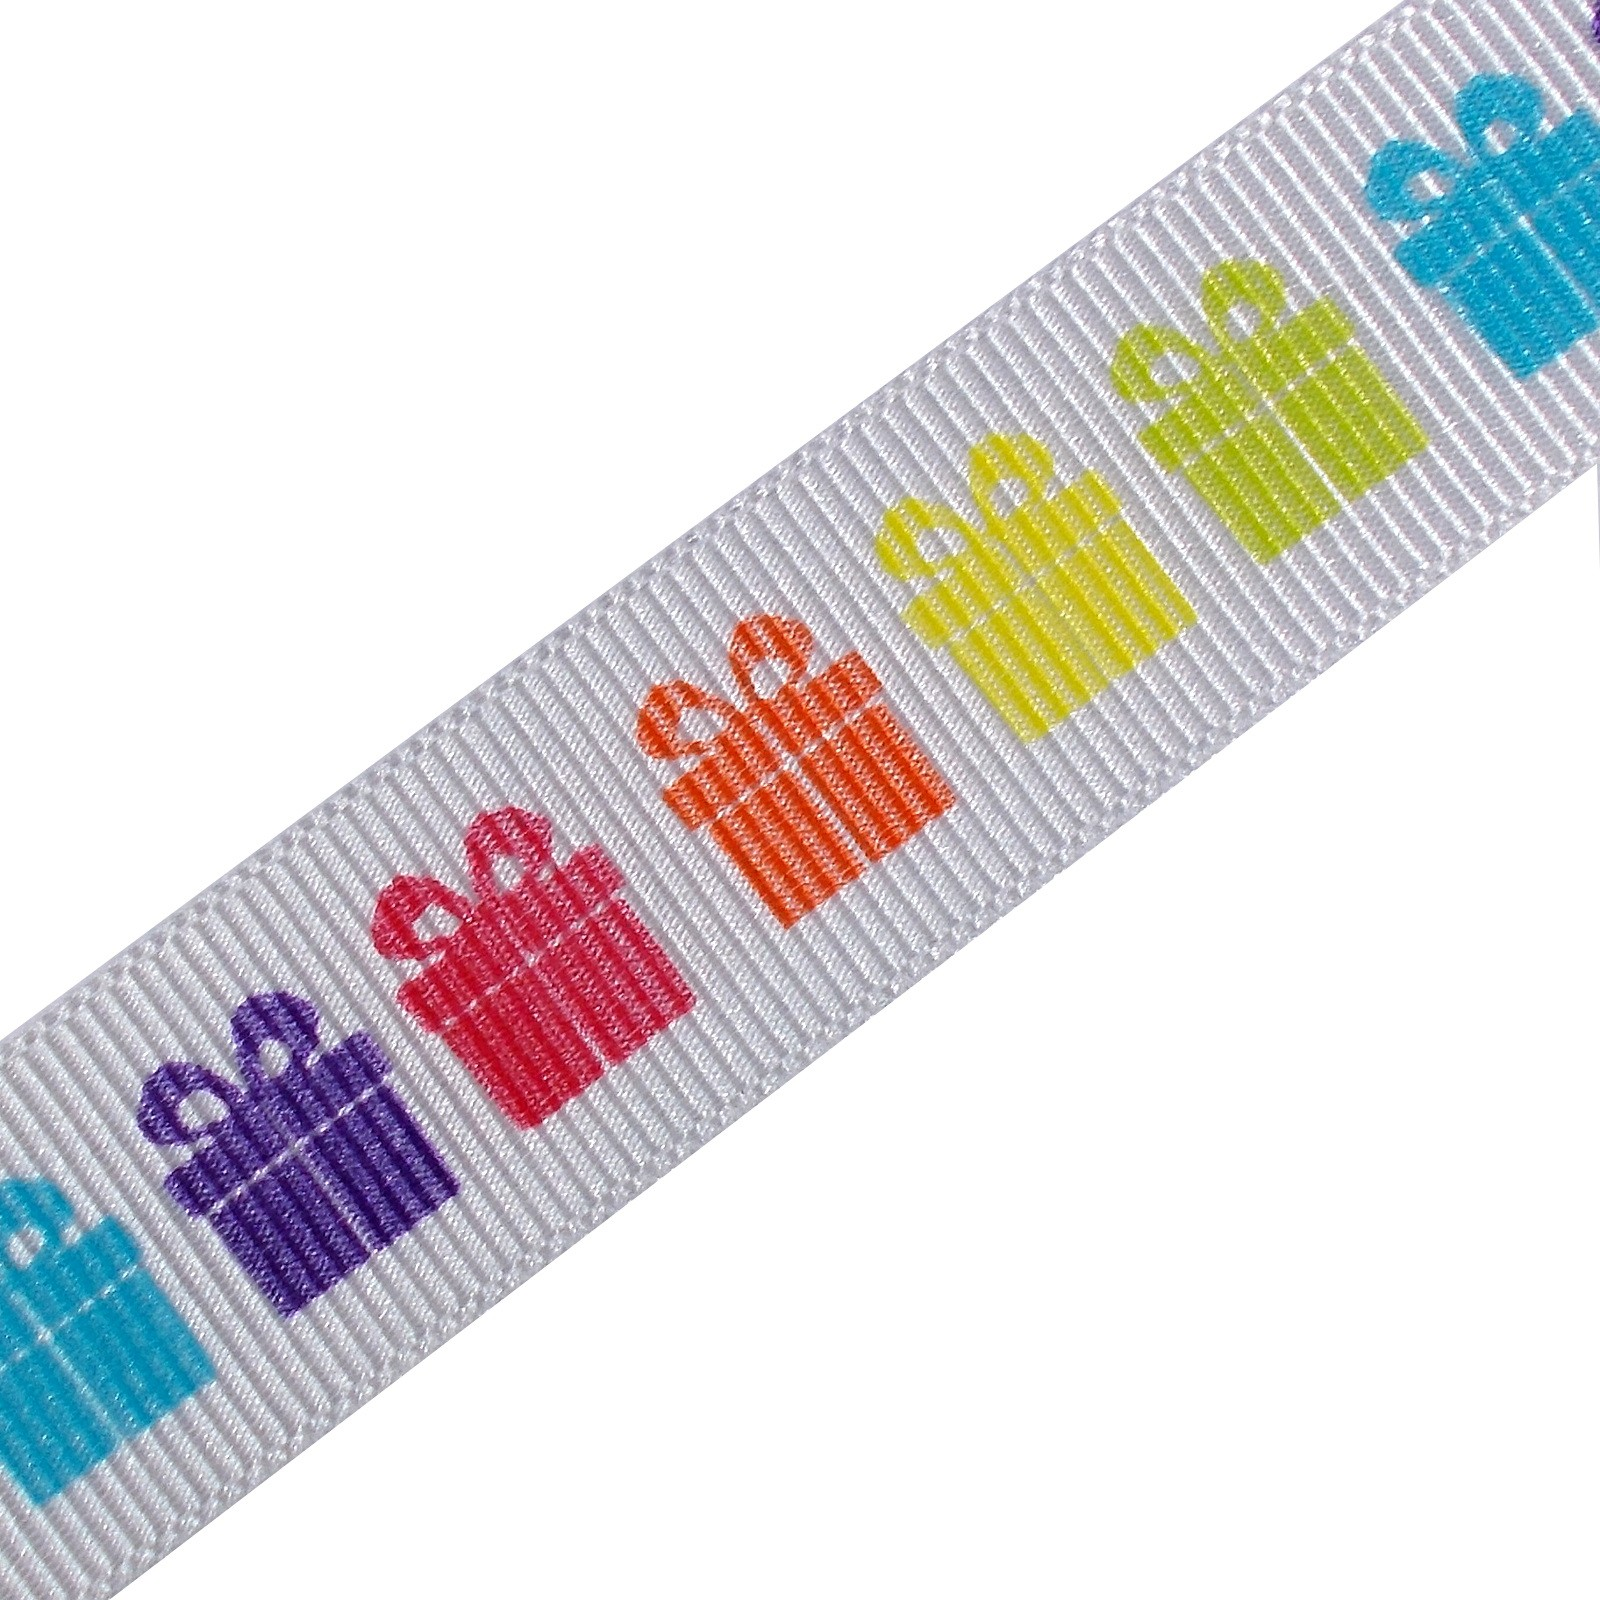 Berisfords Bright Rainbow Grosgrain Ribbon 25mm wide Parcel Gifts 2 metre length